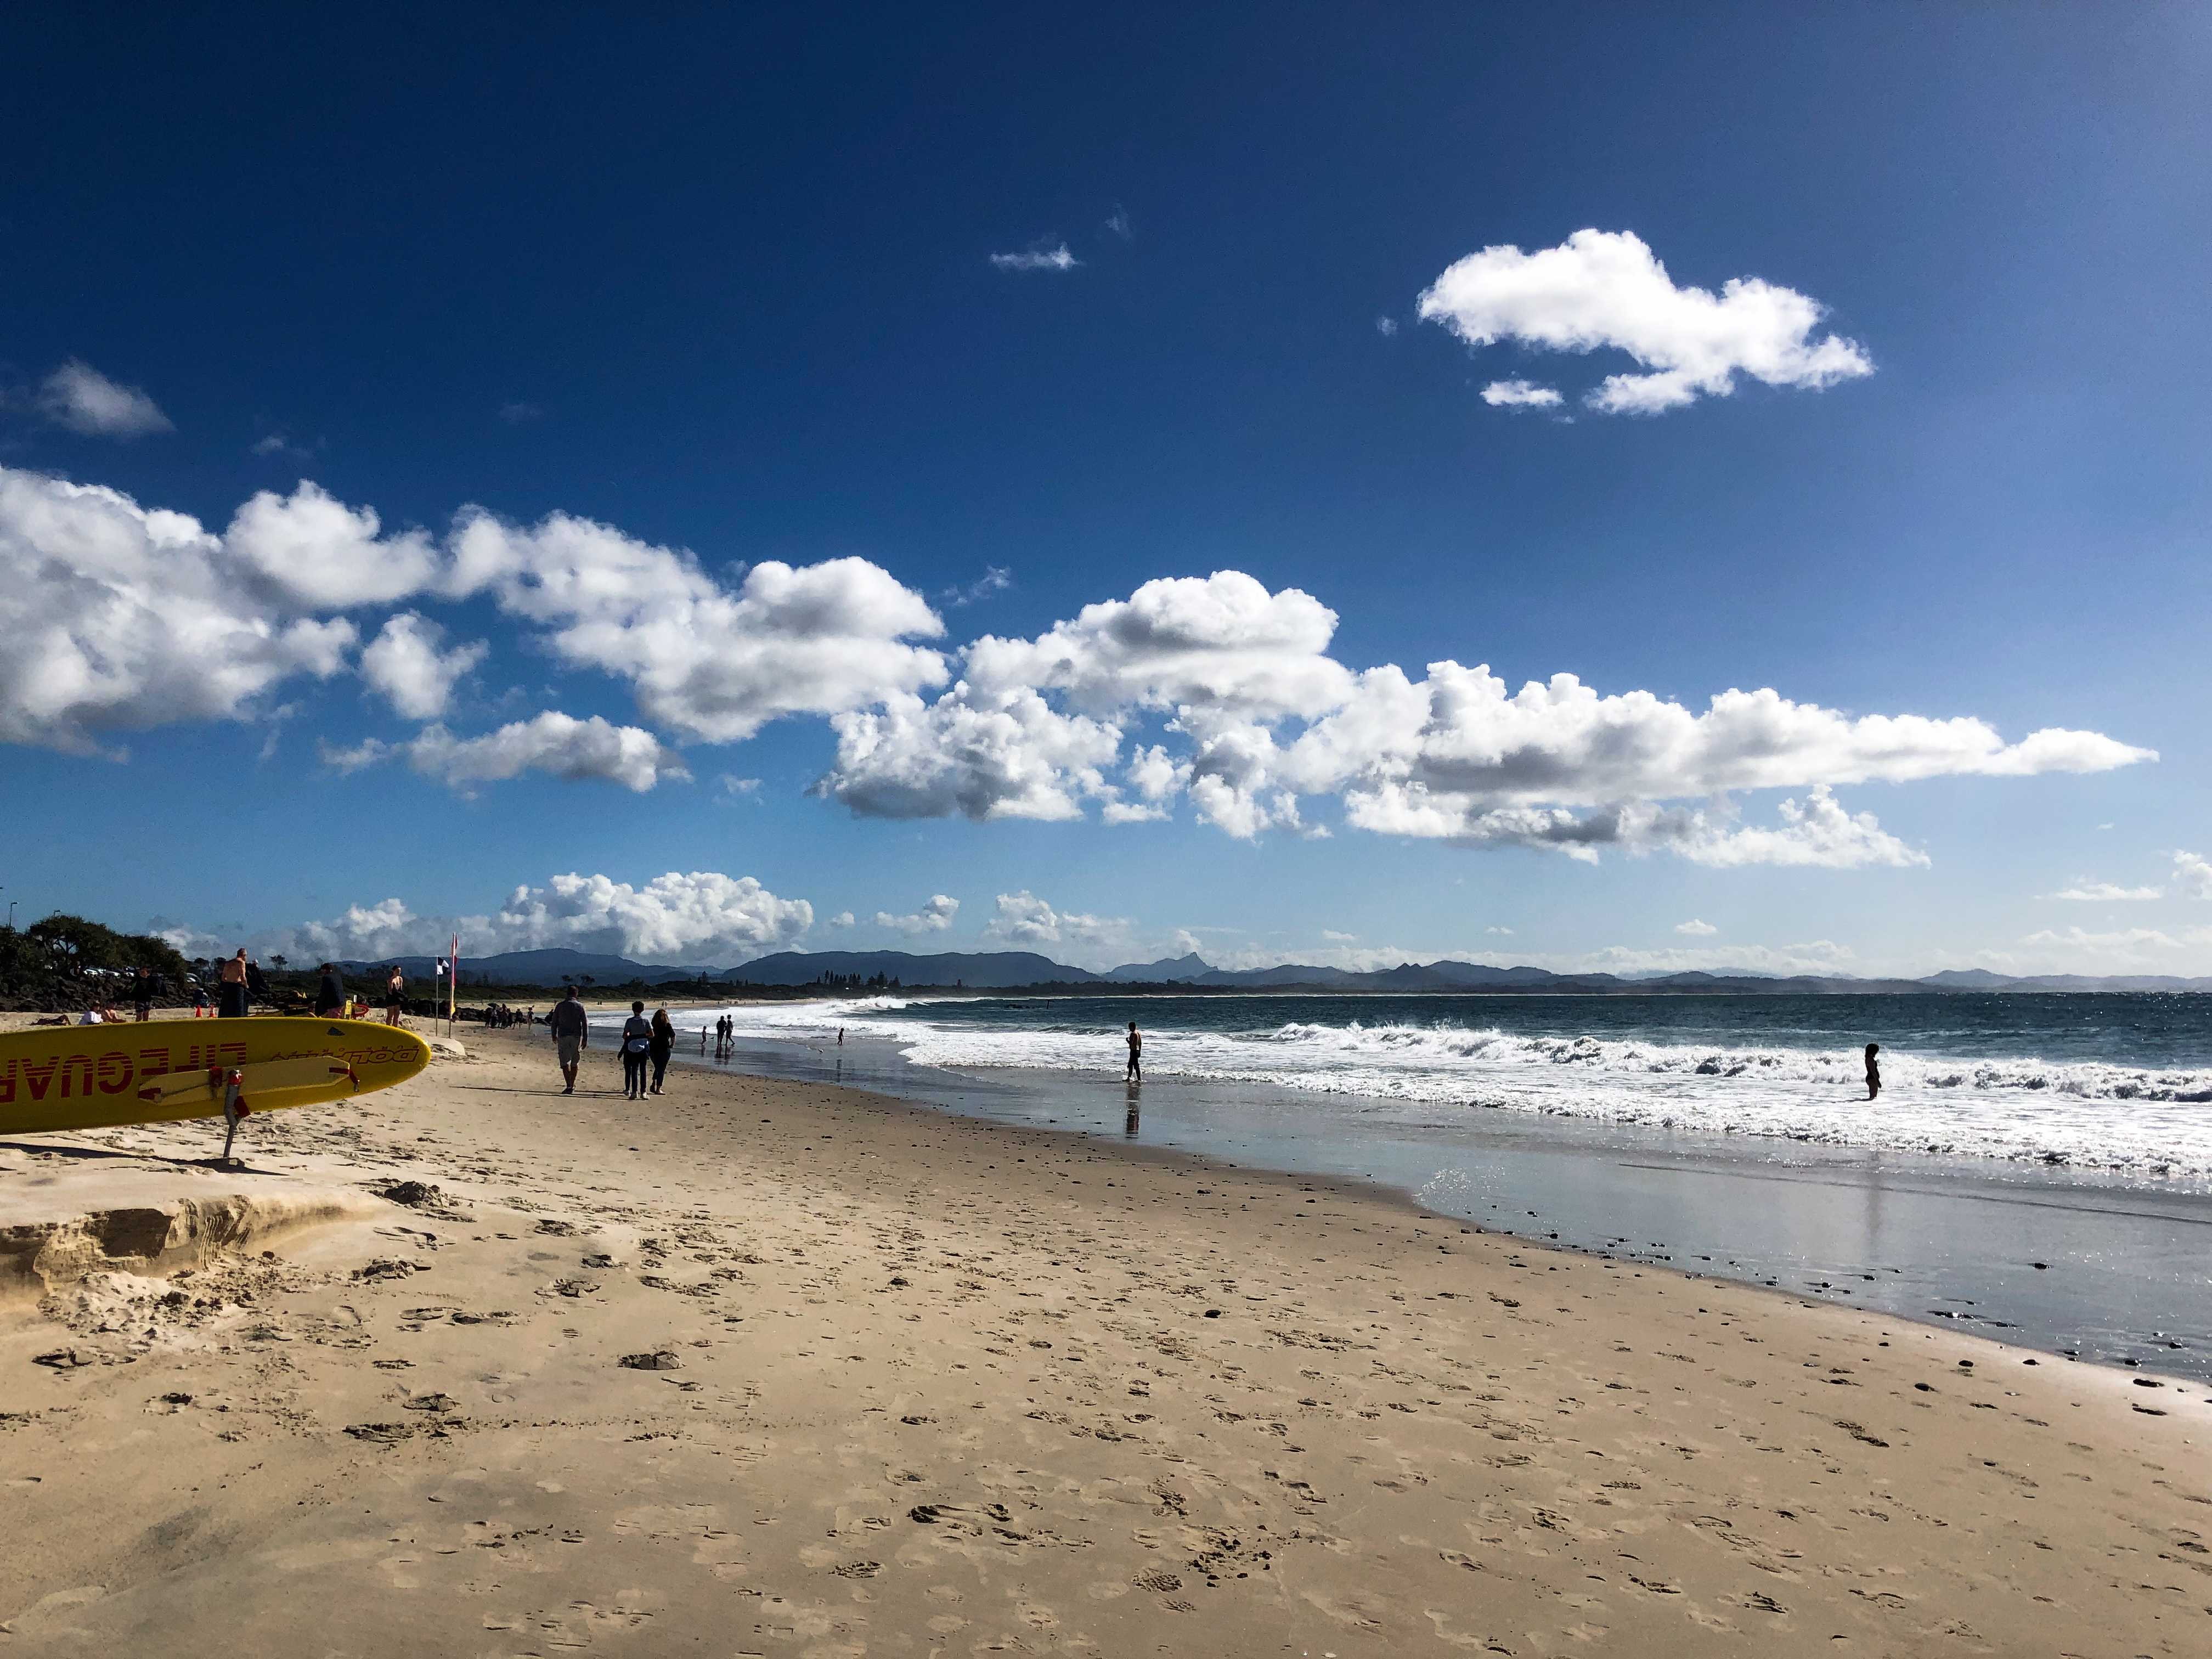 The main beach at Byron Bay makes for a beautiful day trip from Brisbane